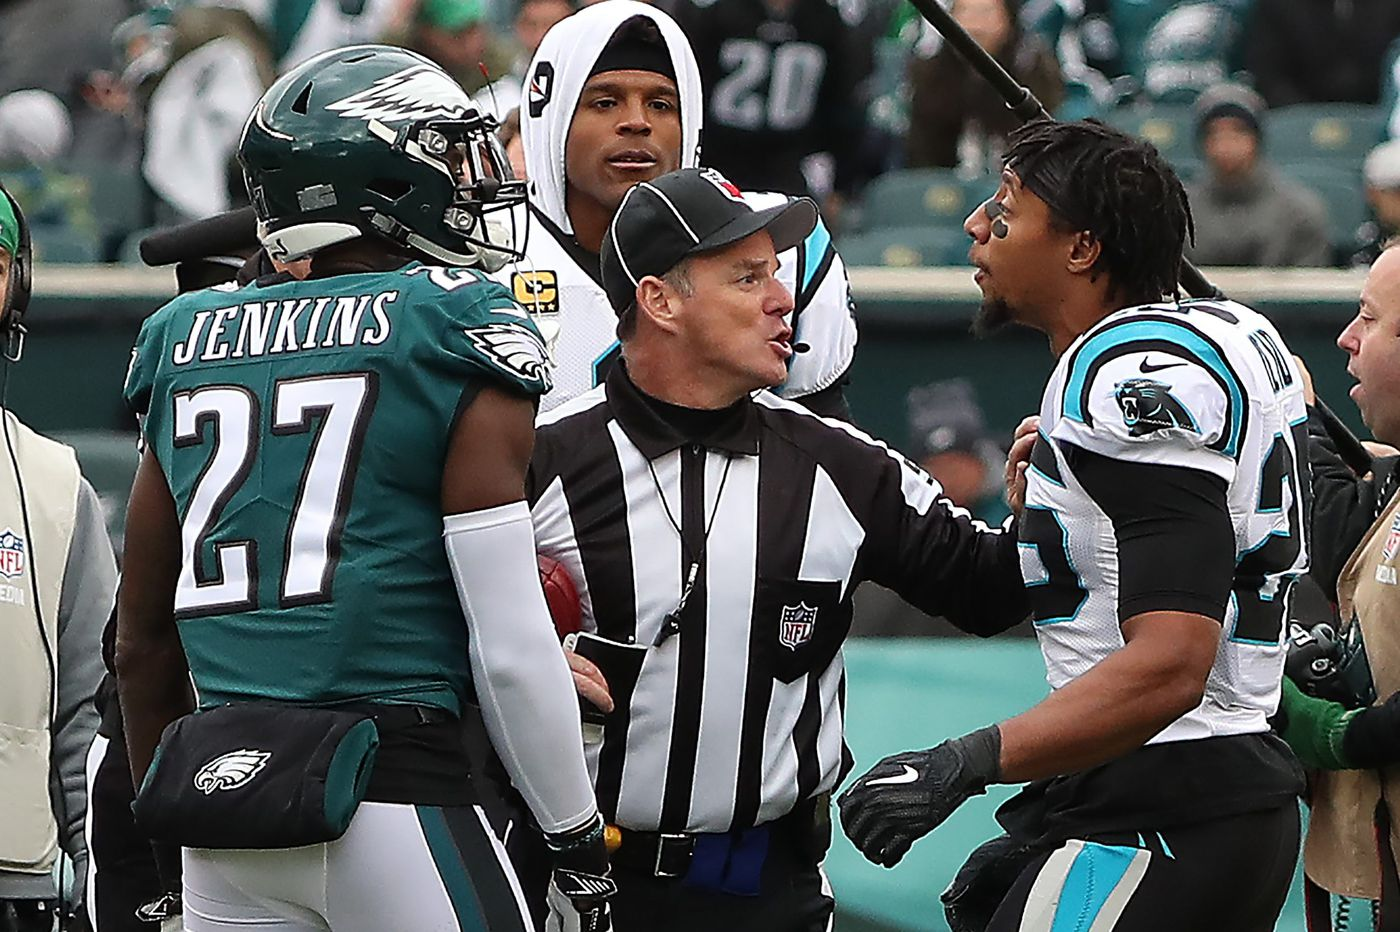 41f8482cd Panthers  Eric Reid exchanges words with Eagles  Malcolm Jenkins prior to  game